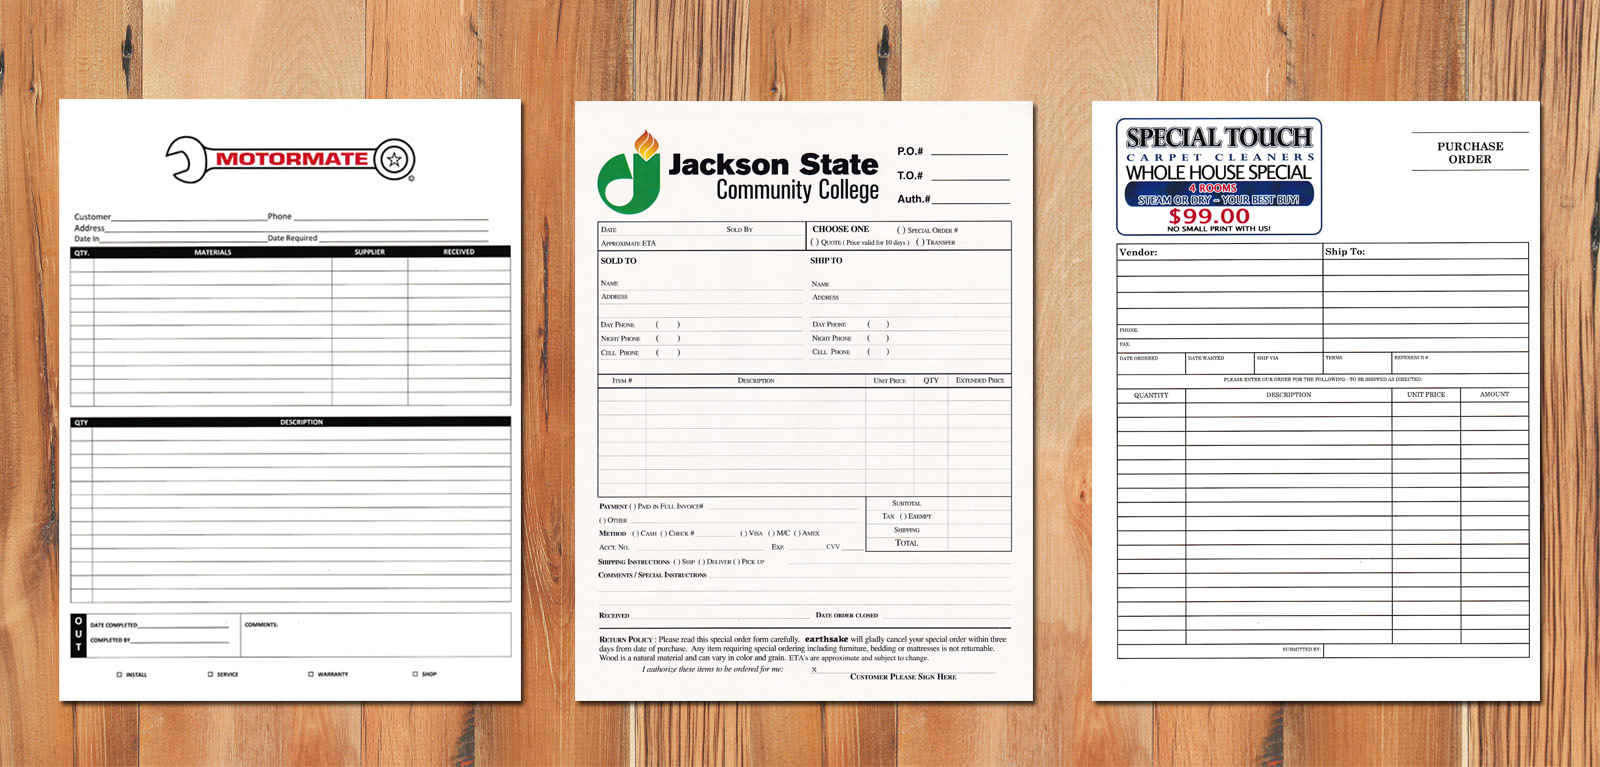 Print Your Own Carbonless Forms